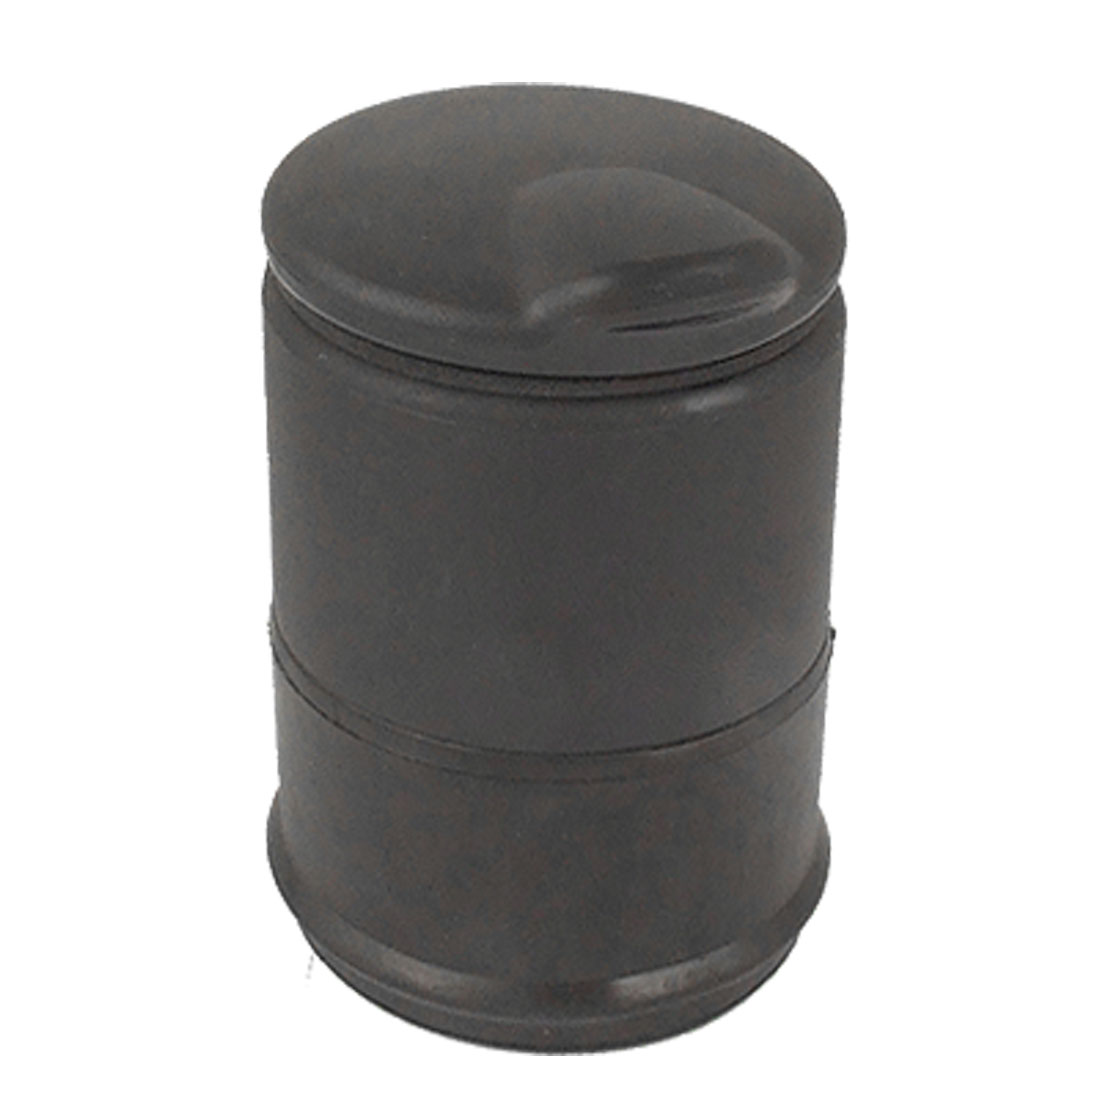 Portable Cylinder Shaped Plastic Rubber Ashtray Black